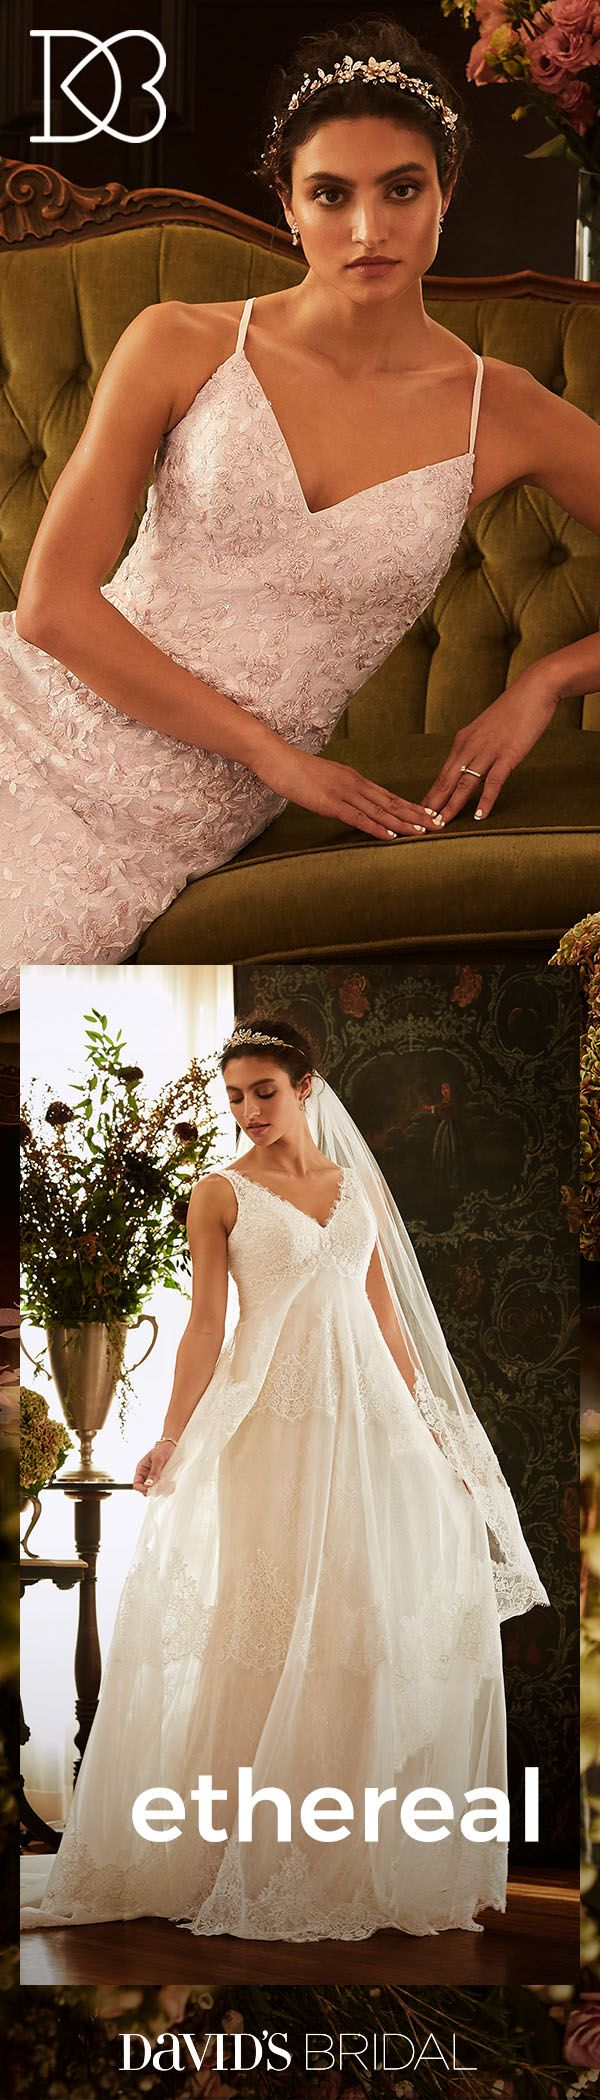 Melissa Sweet wedding dresses are vintage-inspired, poetic, and full of romance. Find something for every style at David's Bridal.